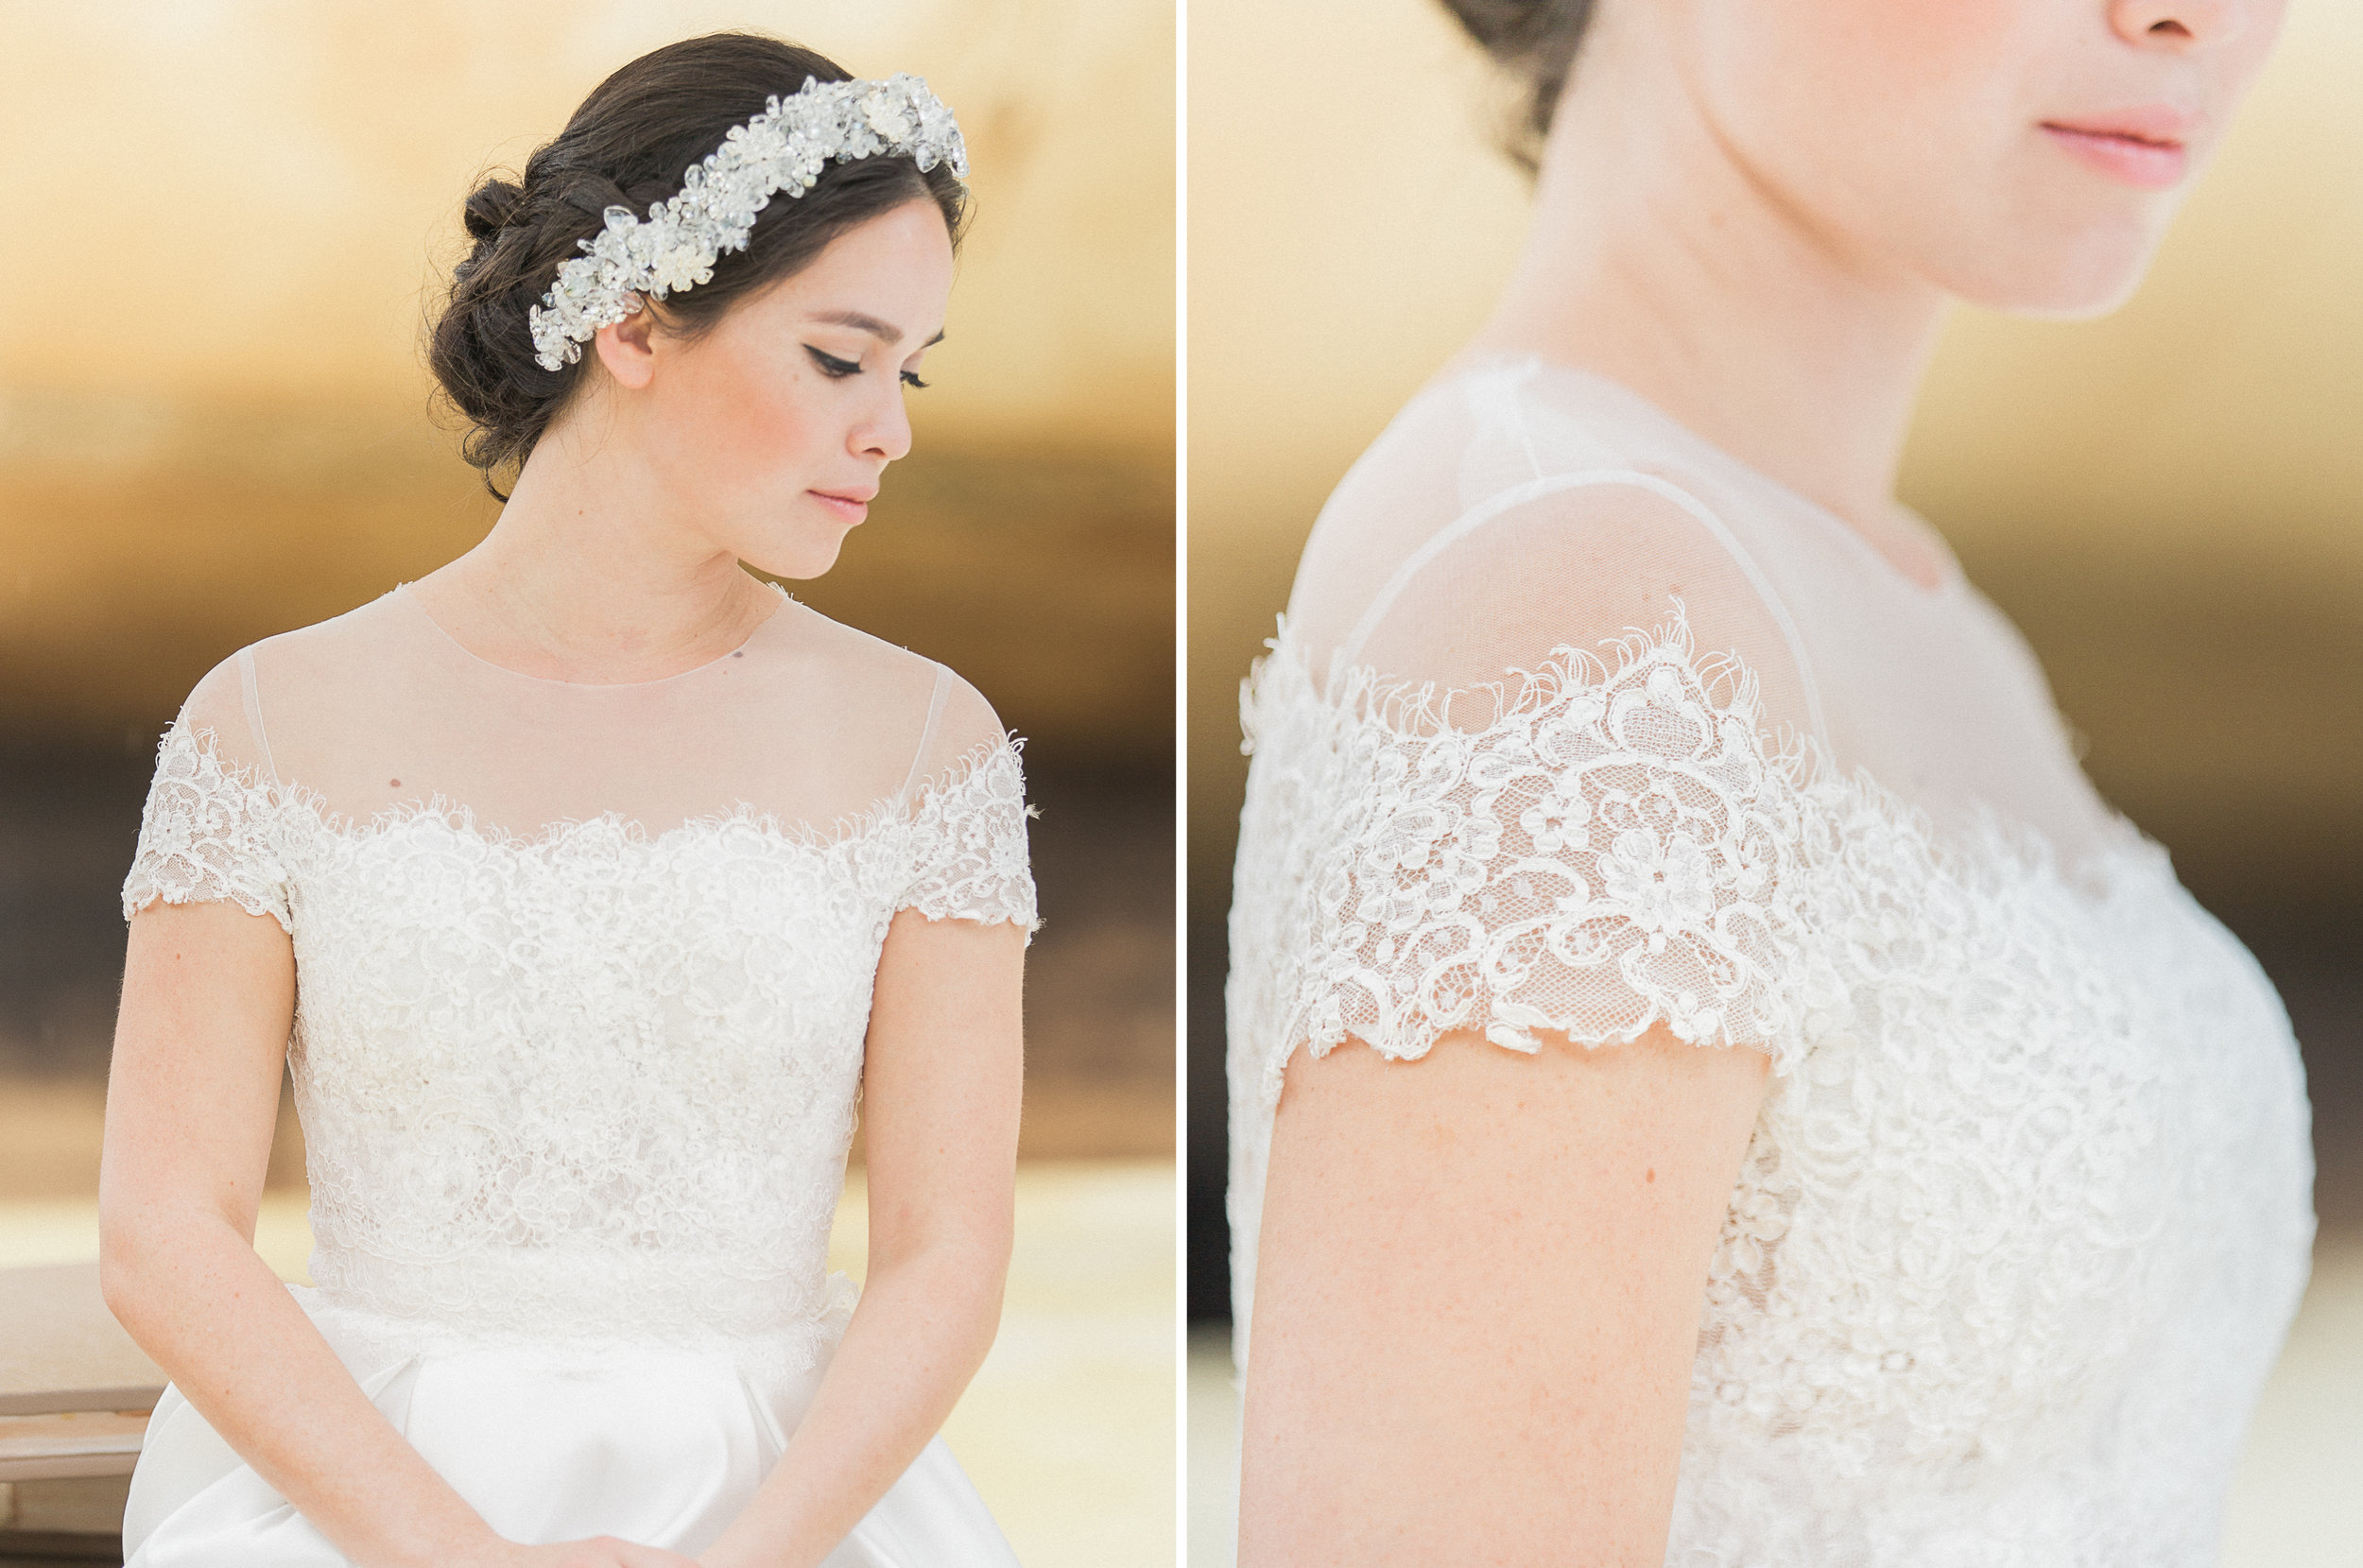 chen sands editorial bridal shoot shakespeare the wedding scoop singapore collage 3.jpg-1.jpg